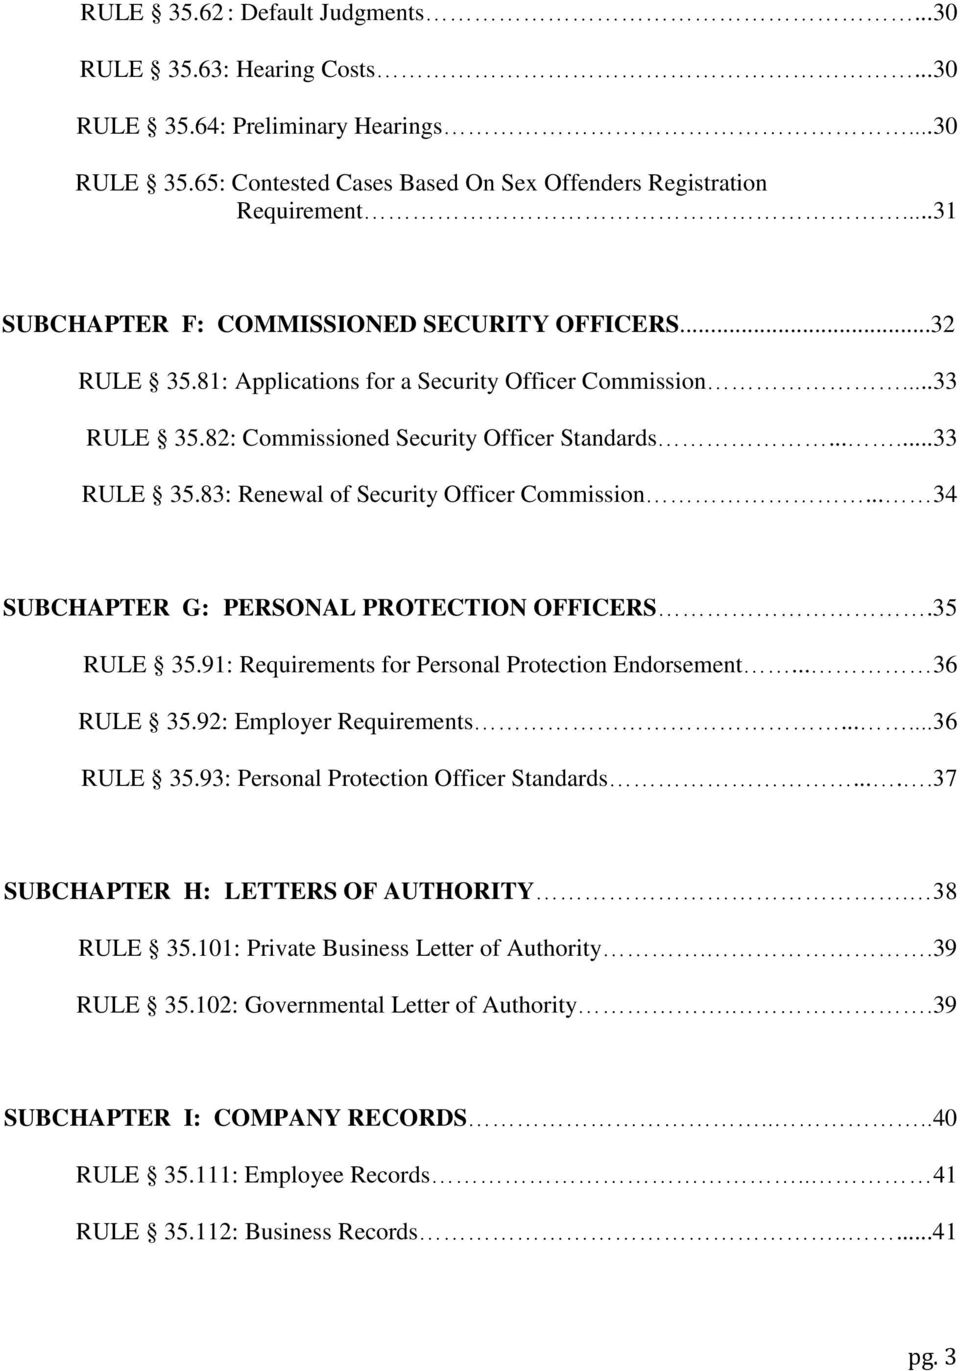 .. 34 SUBCHAPTER G: PERSONAL PROTECTION OFFICERS.35 RULE 35.91: Requirements for Personal Protection Endorsement... 36 RULE 35.92: Employer Requirements......36 RULE 35.93: Personal Protection Officer Standards.